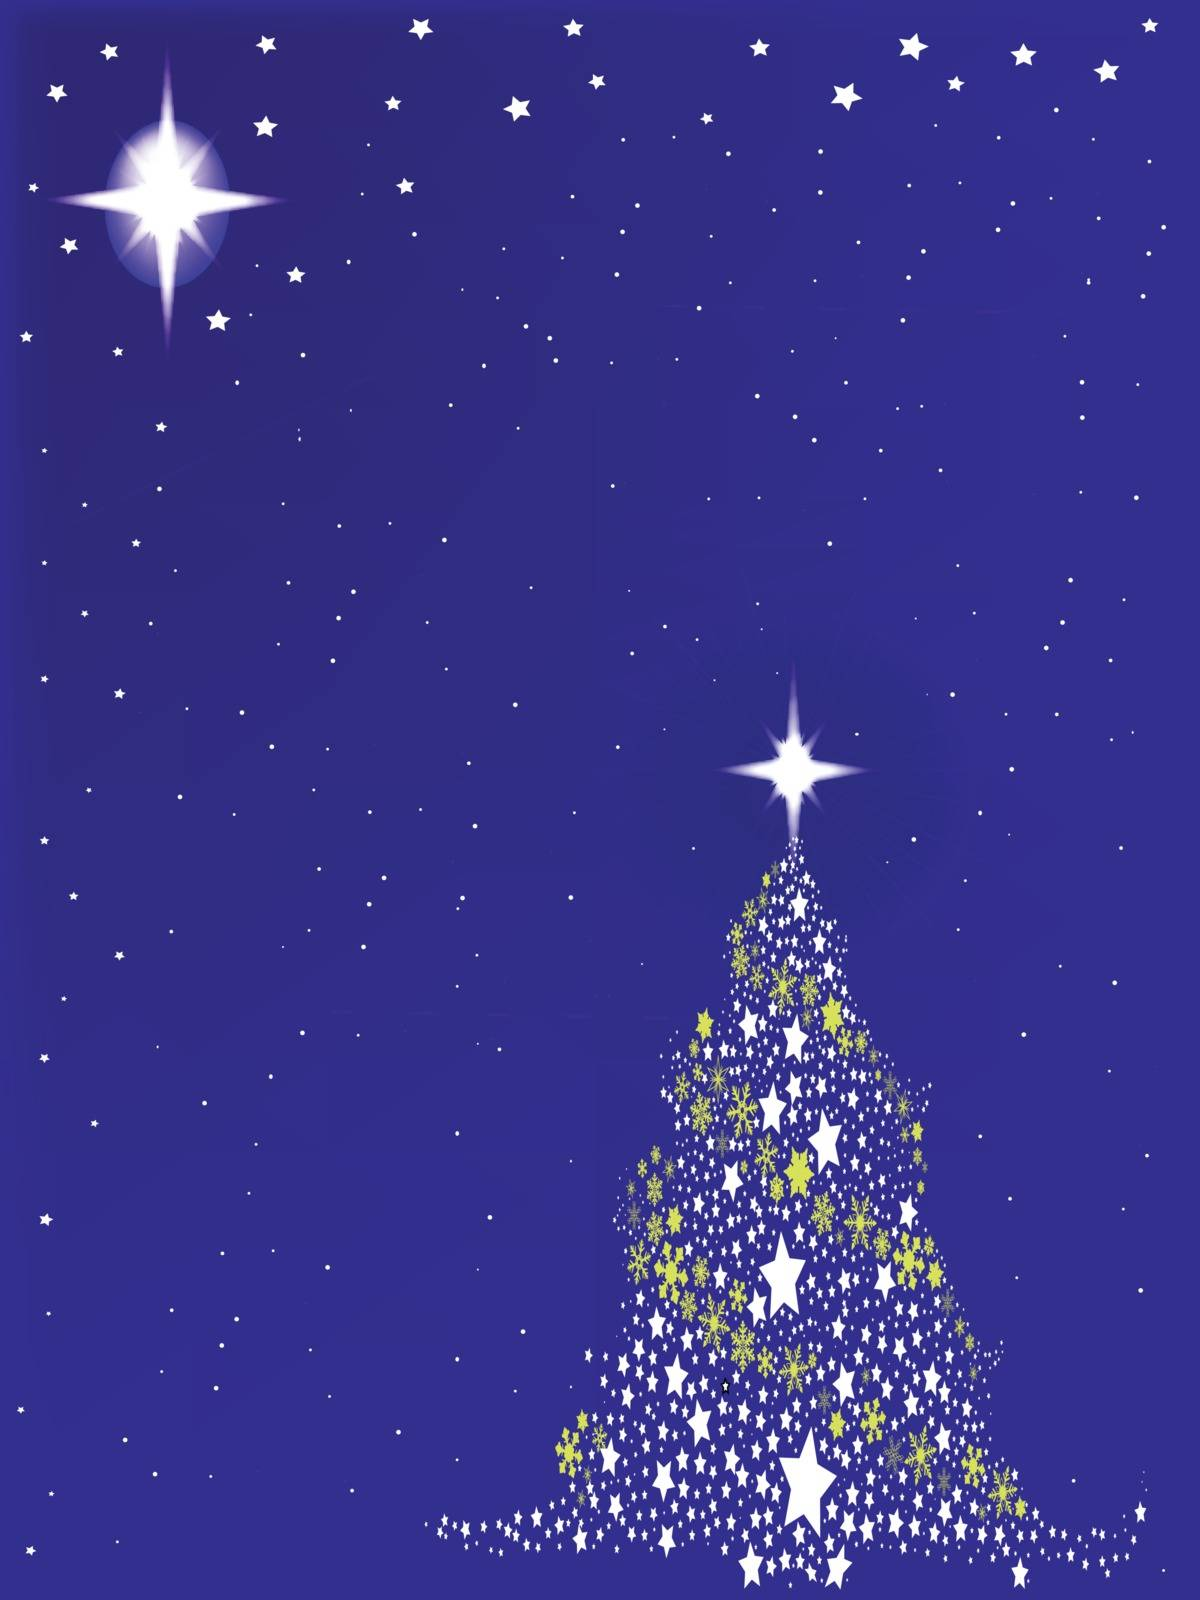 A blue Christmas card backdrop with tree and stars.